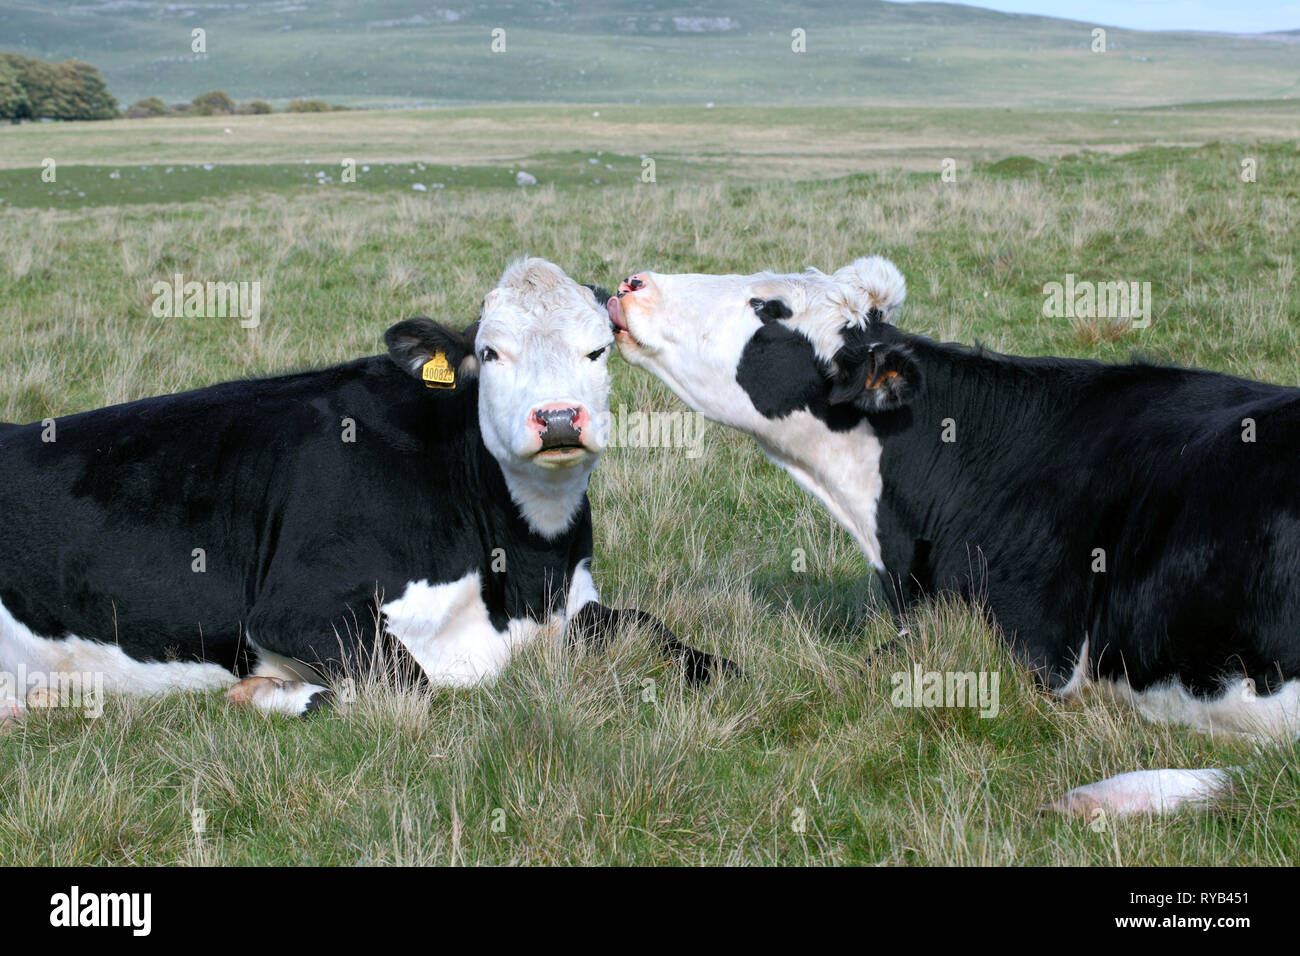 Friendly cows near Malham Tarn in the Yorkshire Dales National Park. - Stock Image